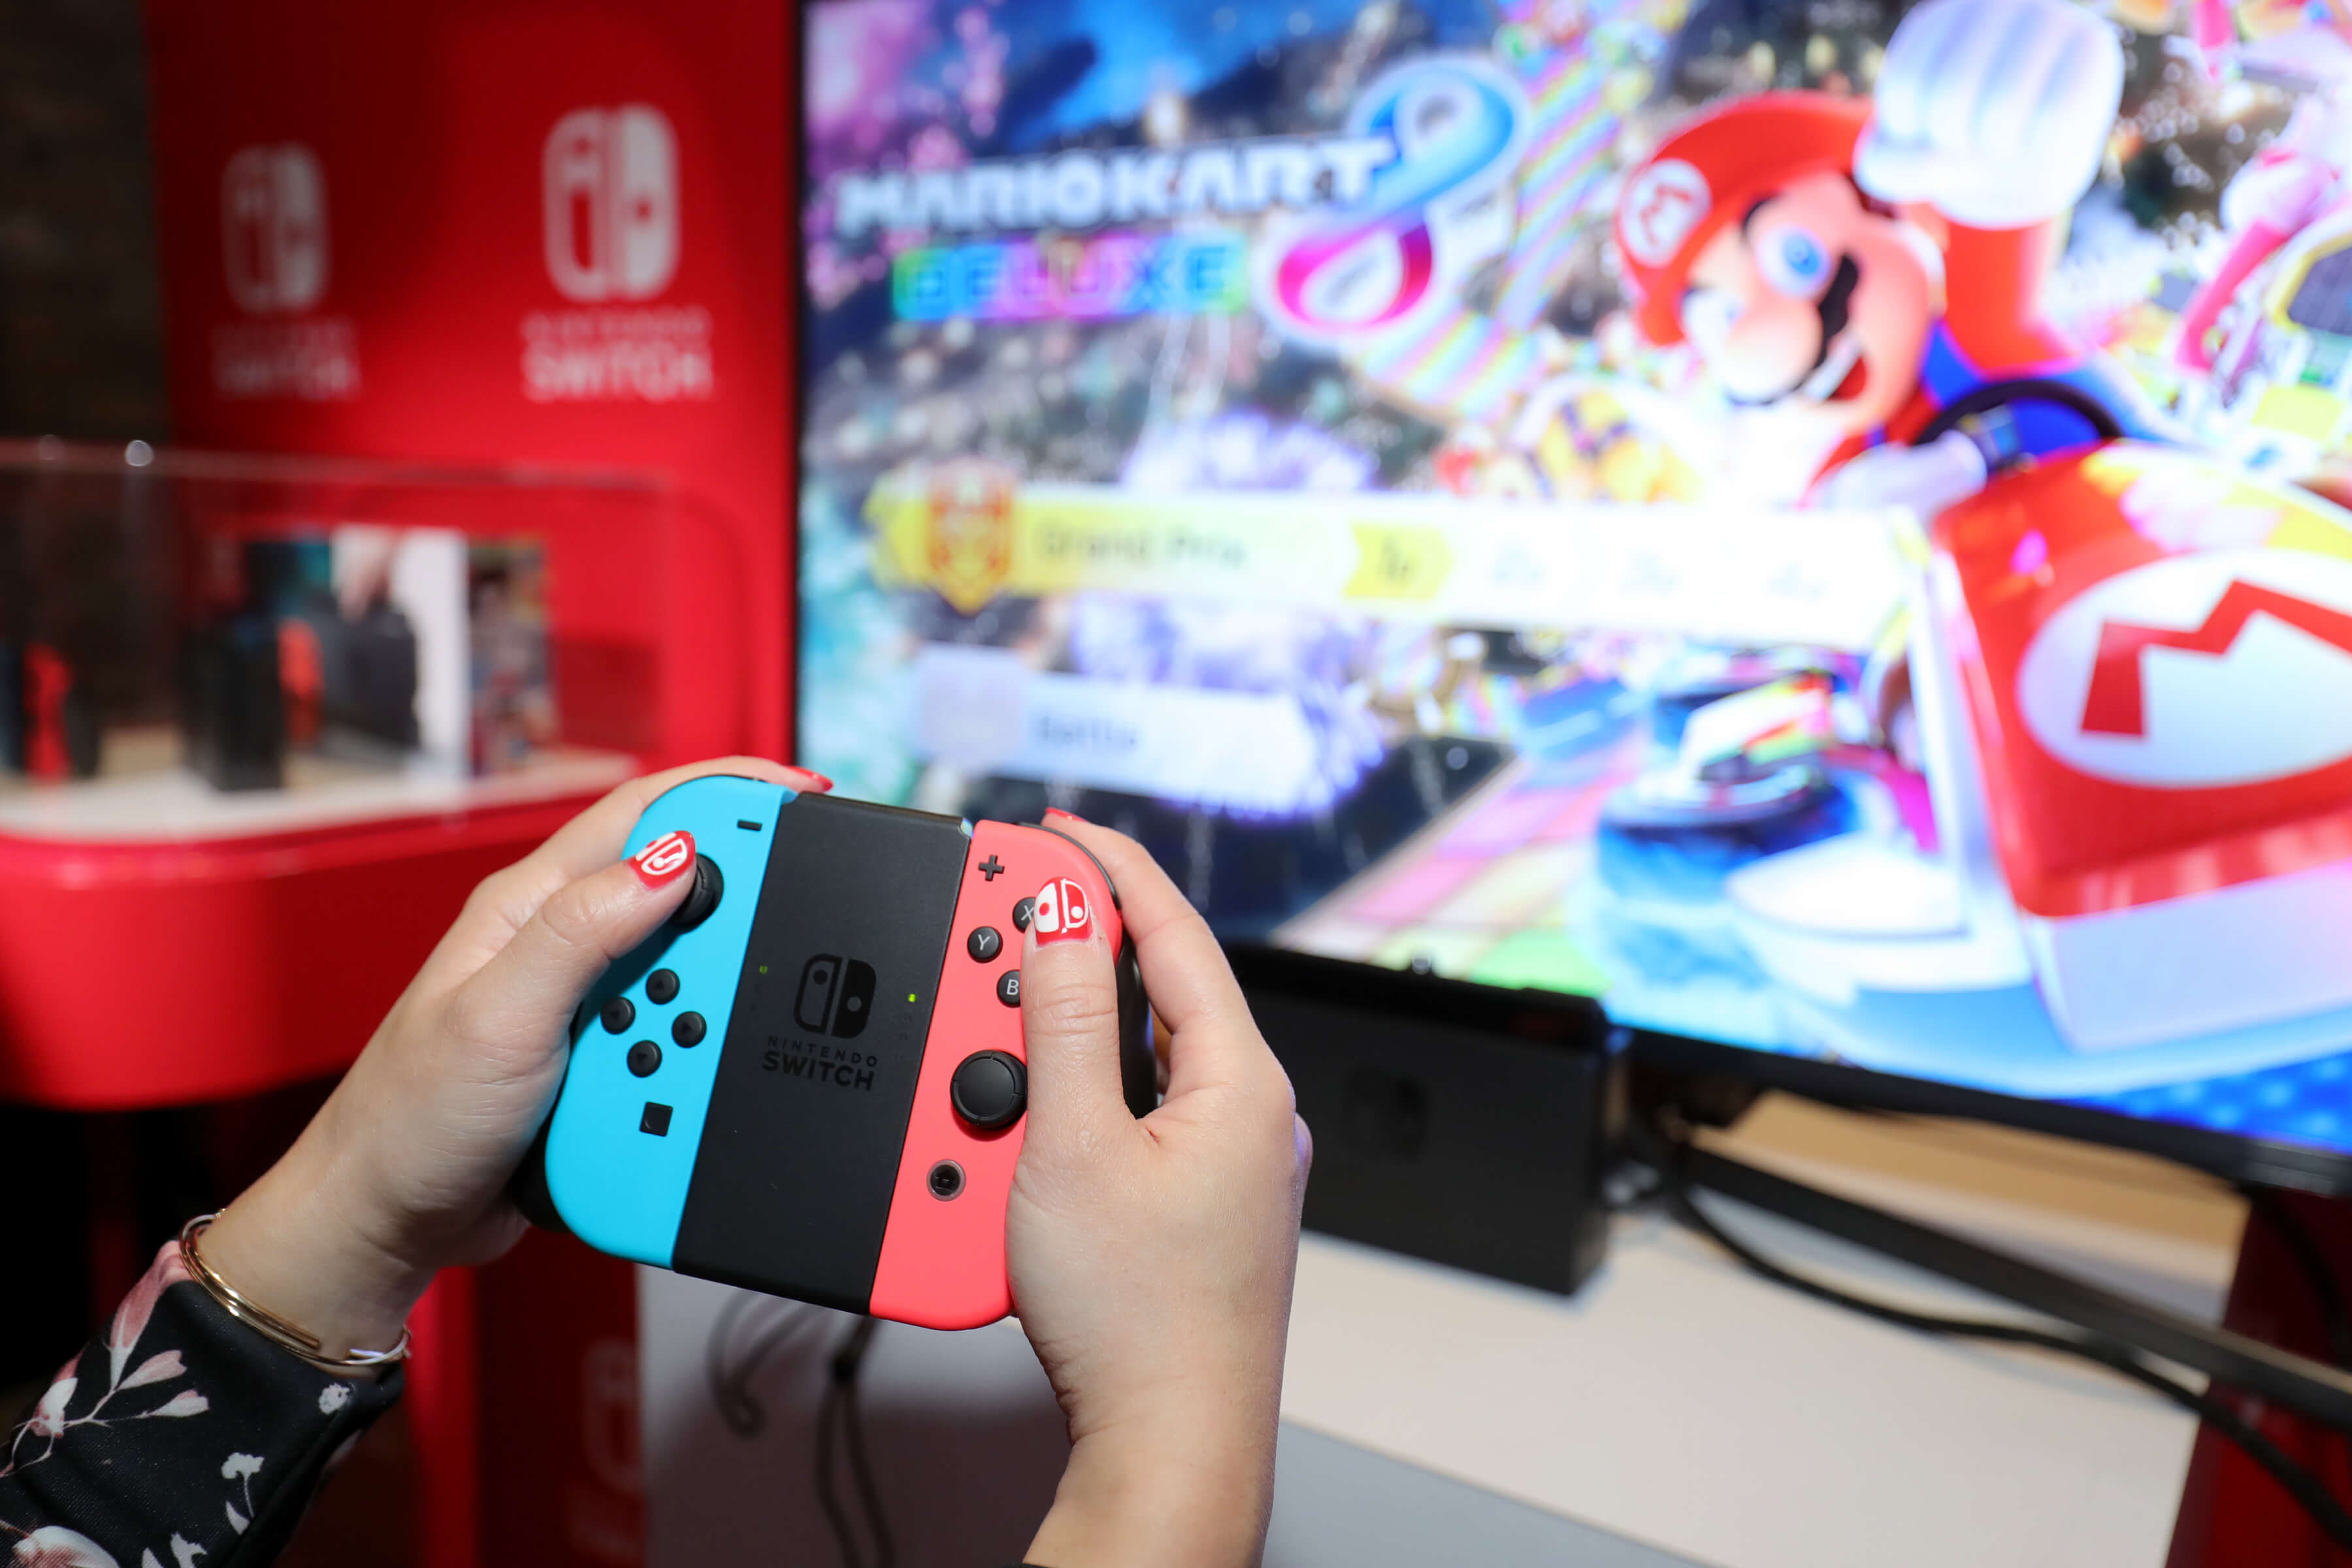 Online games with friends make you happier: study